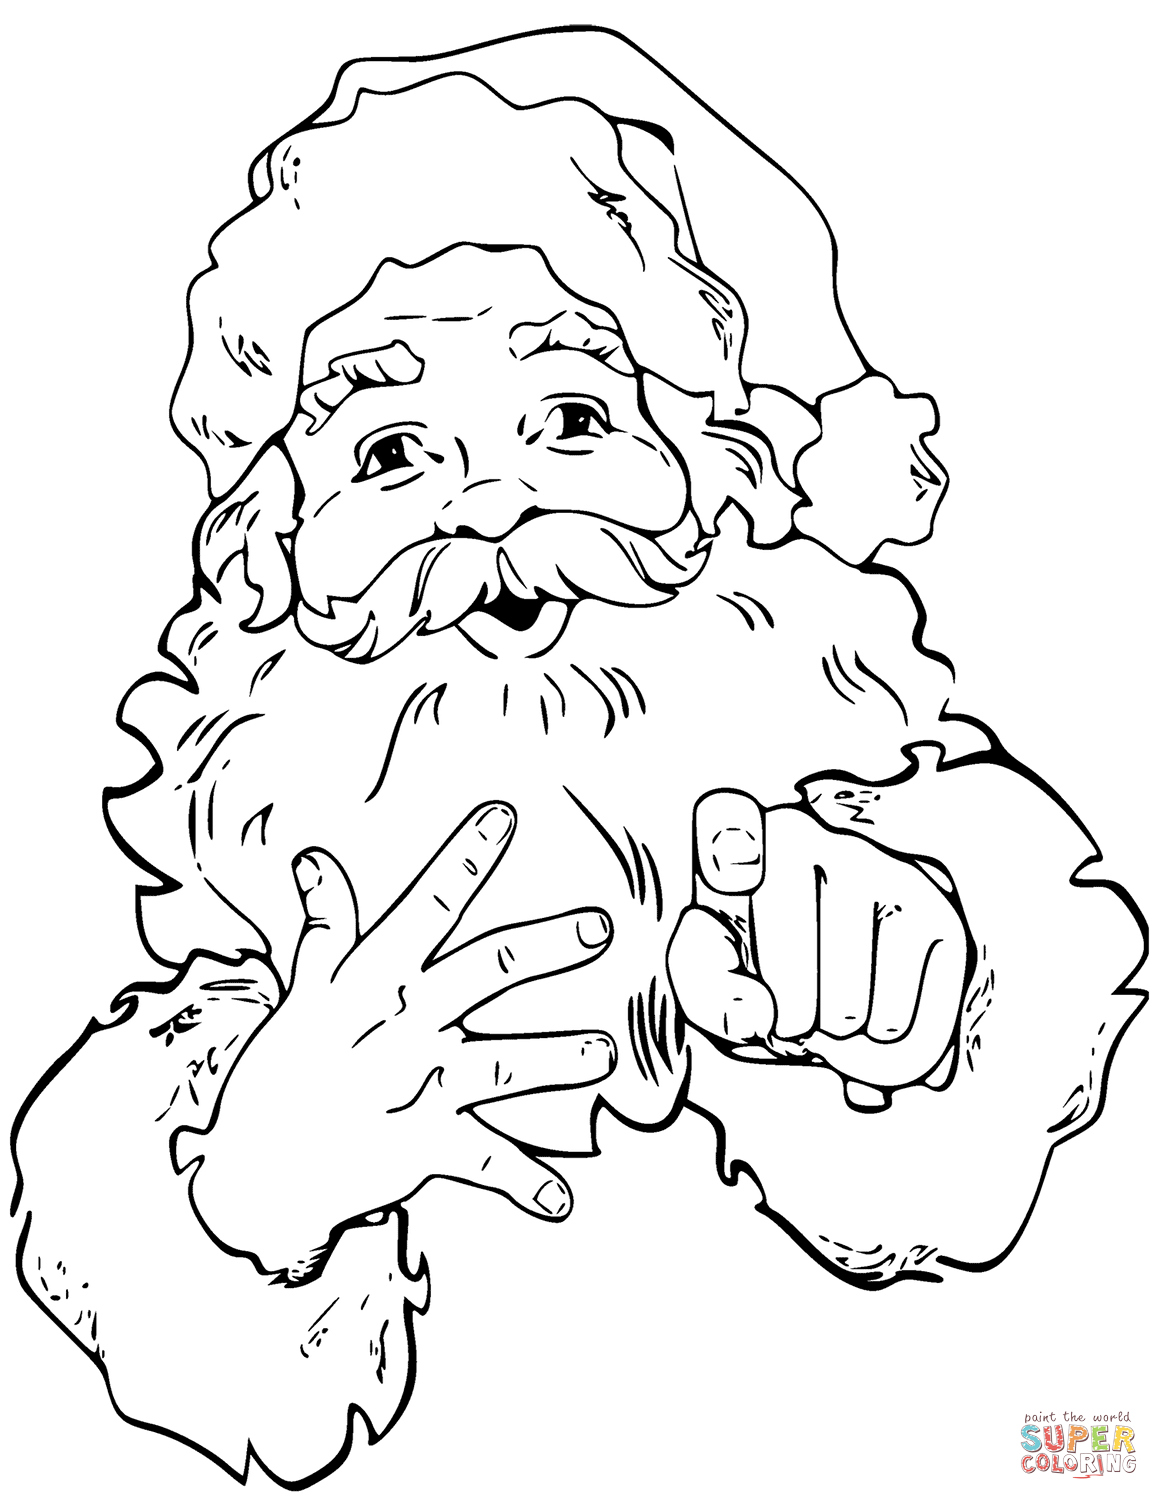 Santa Claus Is Pointing Finger Coloring Page